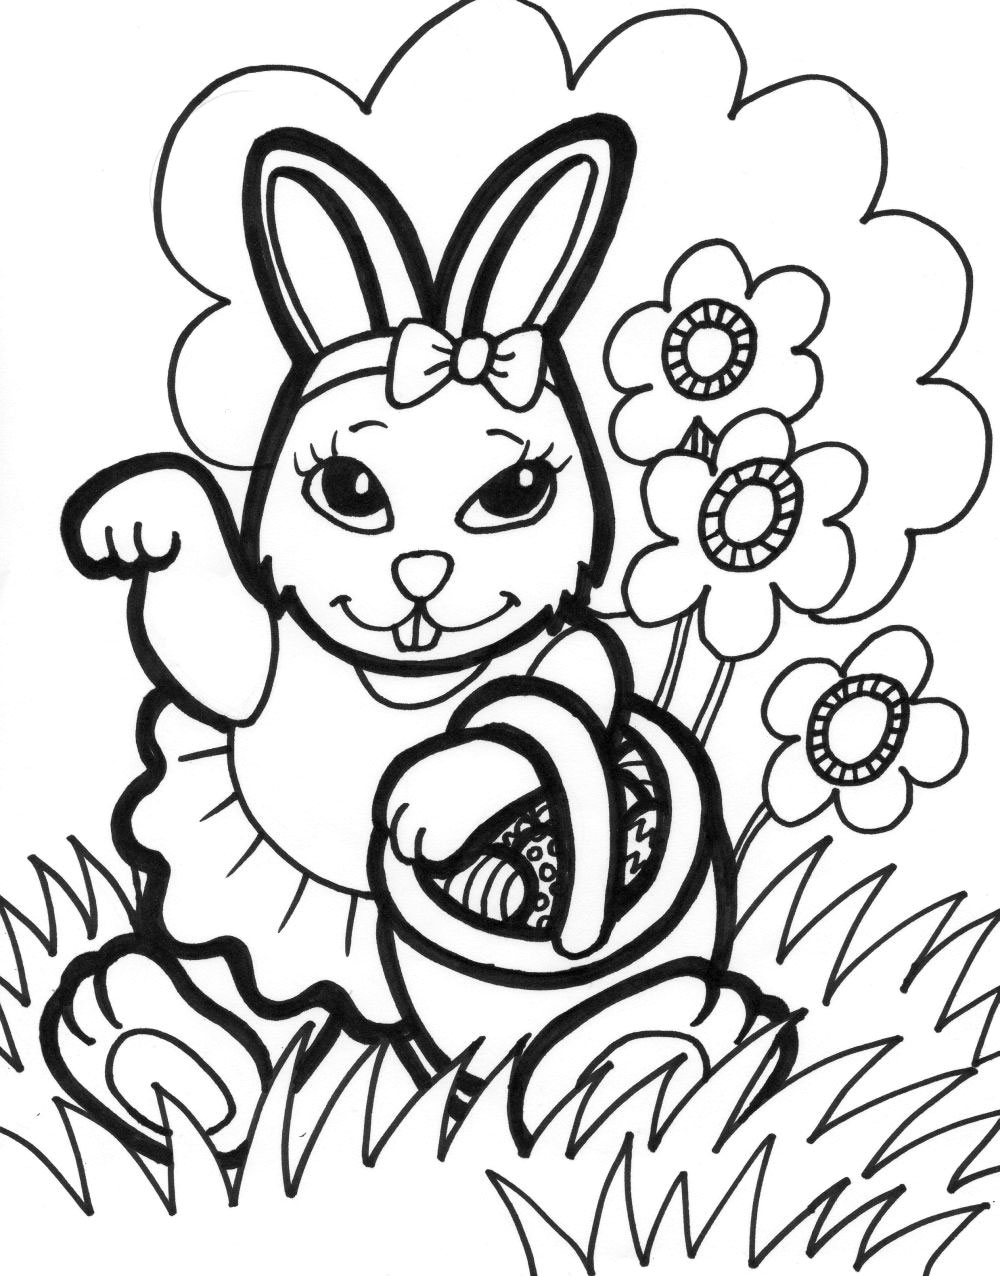 Bunny Coloring Sheets Free Printable 1110 Gallery Of Easter Coloring Printable Easter Coloring Pages Coloring Gallery